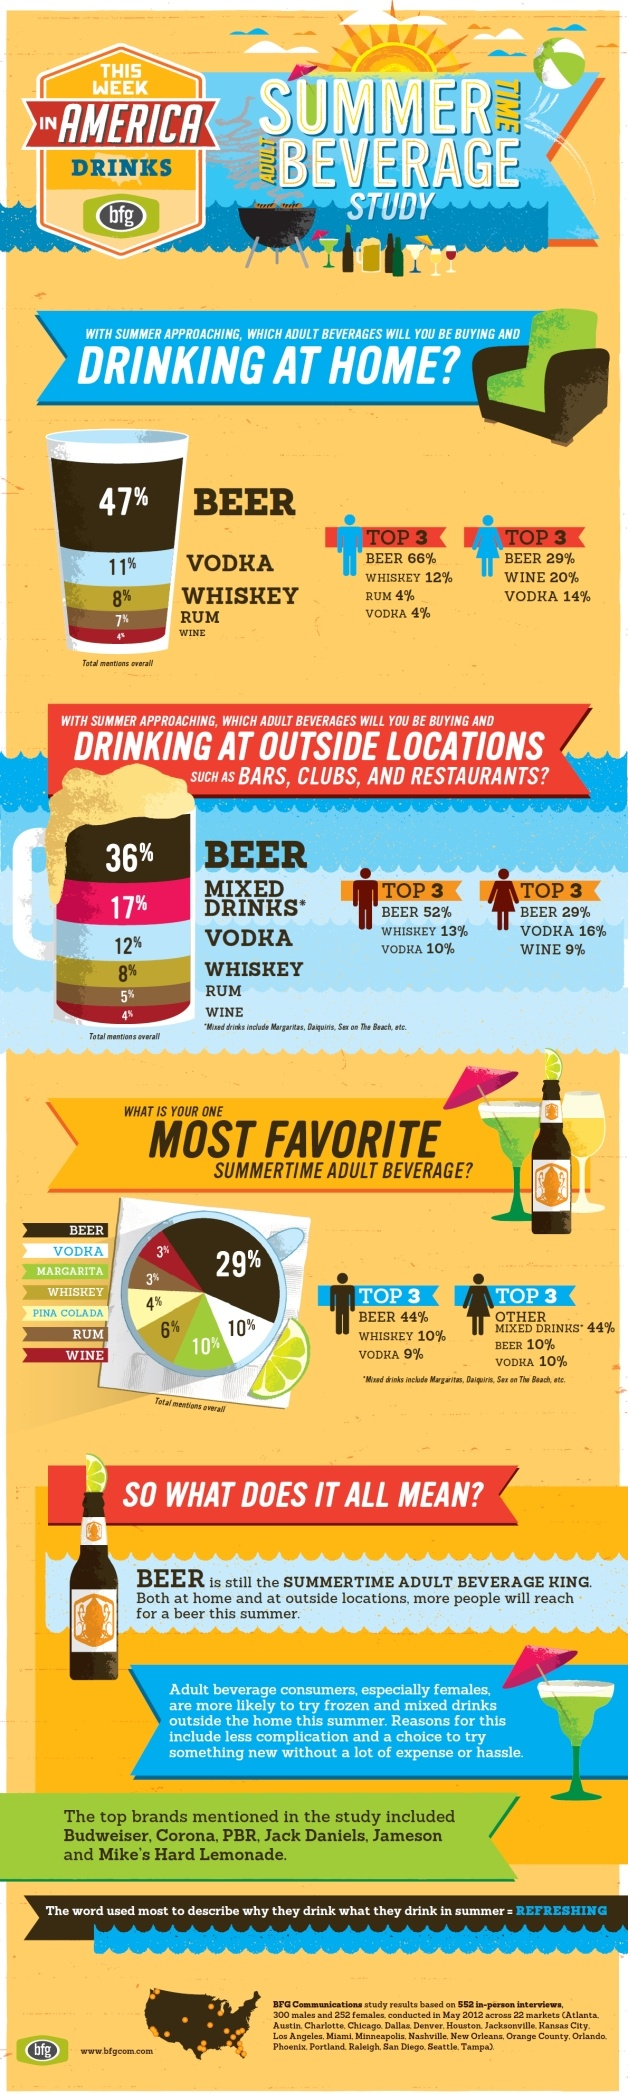 #Beer before liquor, never sicker; #liquor before beer, in the clear. The old adage may ring true at a frat party, but not when it comes to findings from a recent study conducted by creative agency @BFG, whose client roster includes booze biggies @Diageo, @MillerCoors, @Captain Morgan, hipster drink of choice @PBR and others. #marketing #infographic #summer